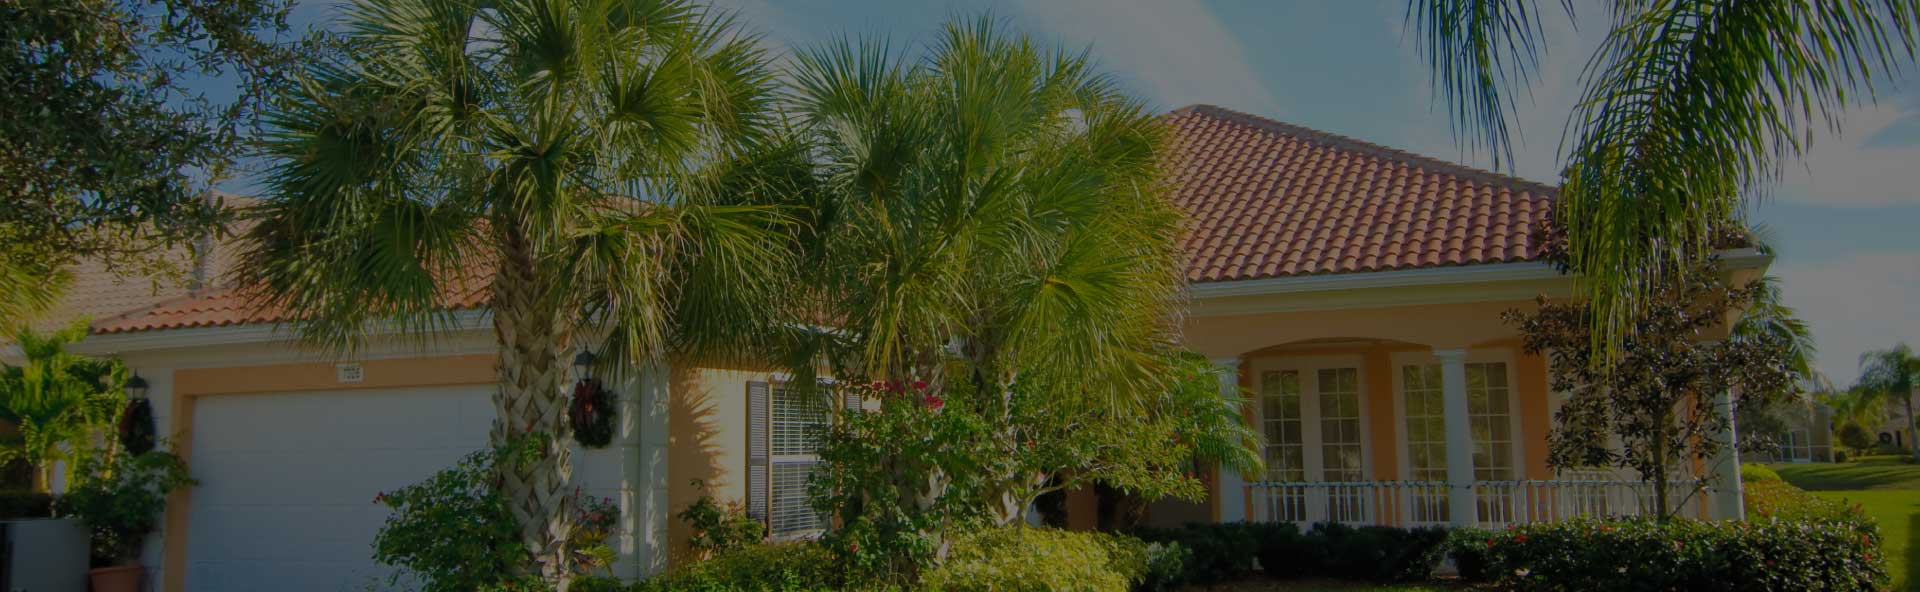 Our mission is to advance sustainable Hispanic homeownership